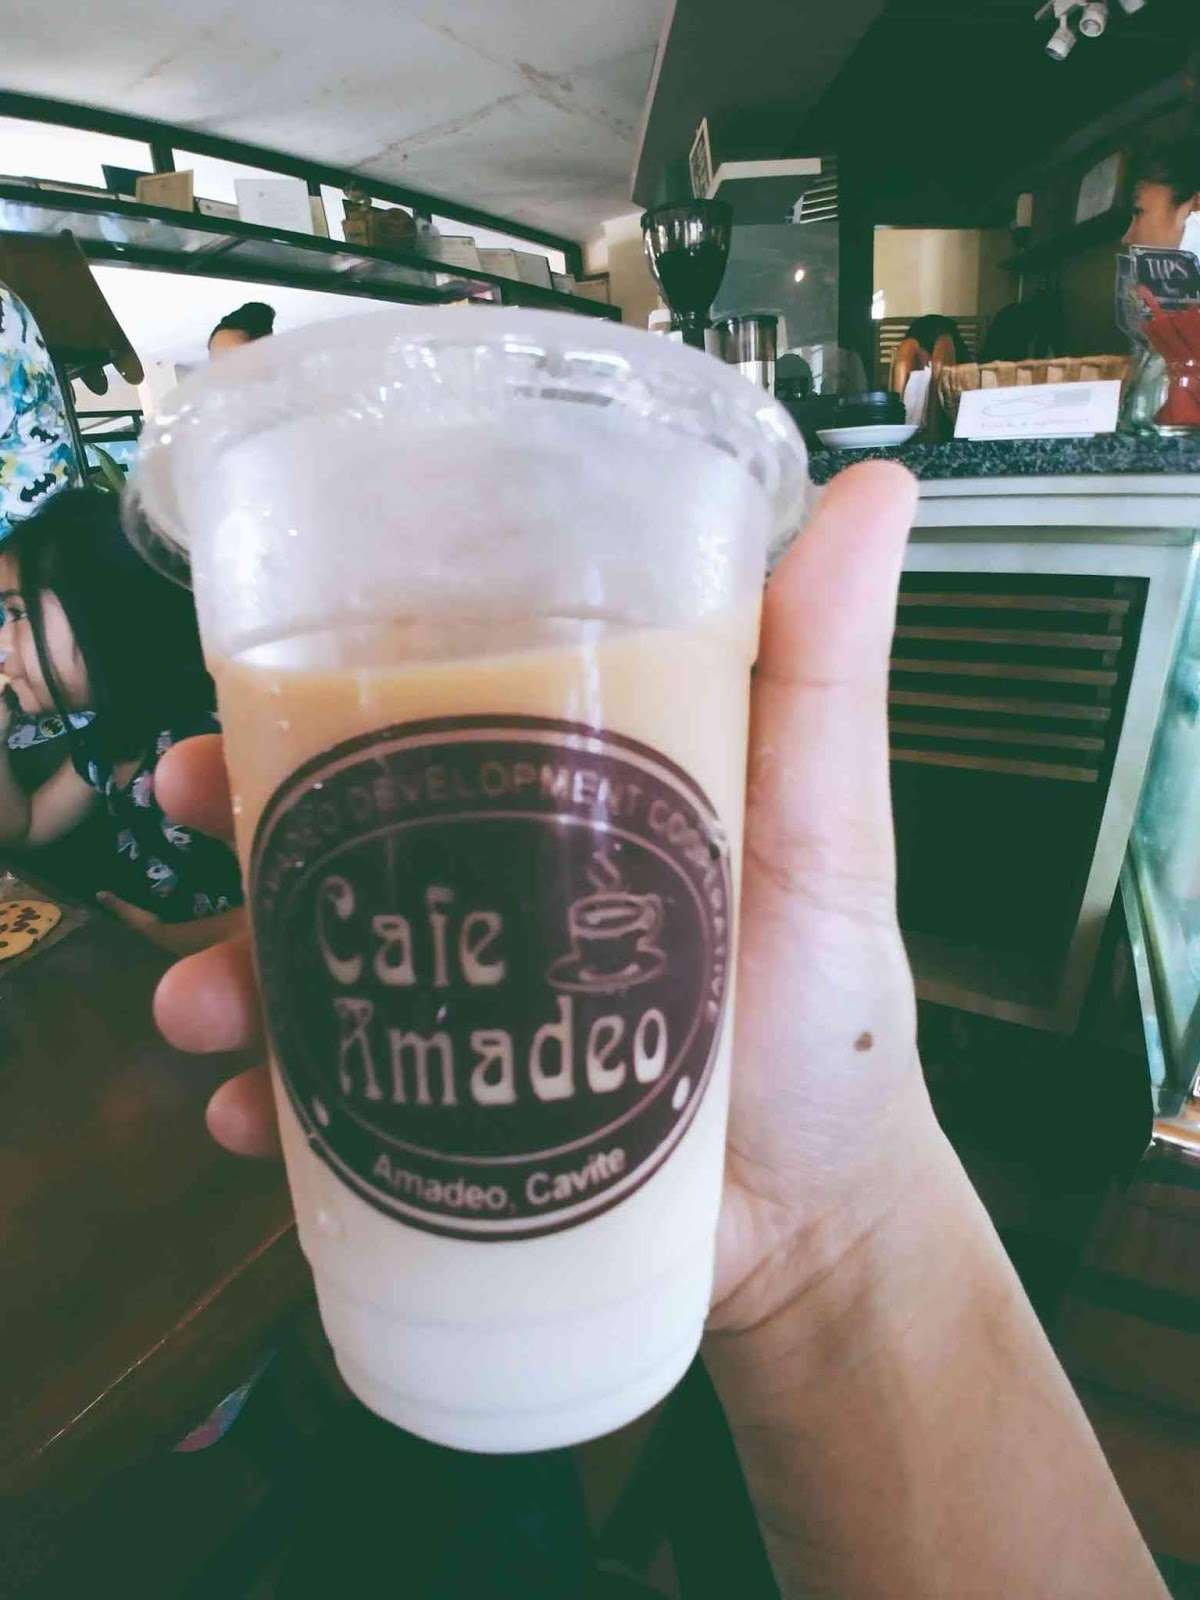 Cafe Amadeo latte coffee